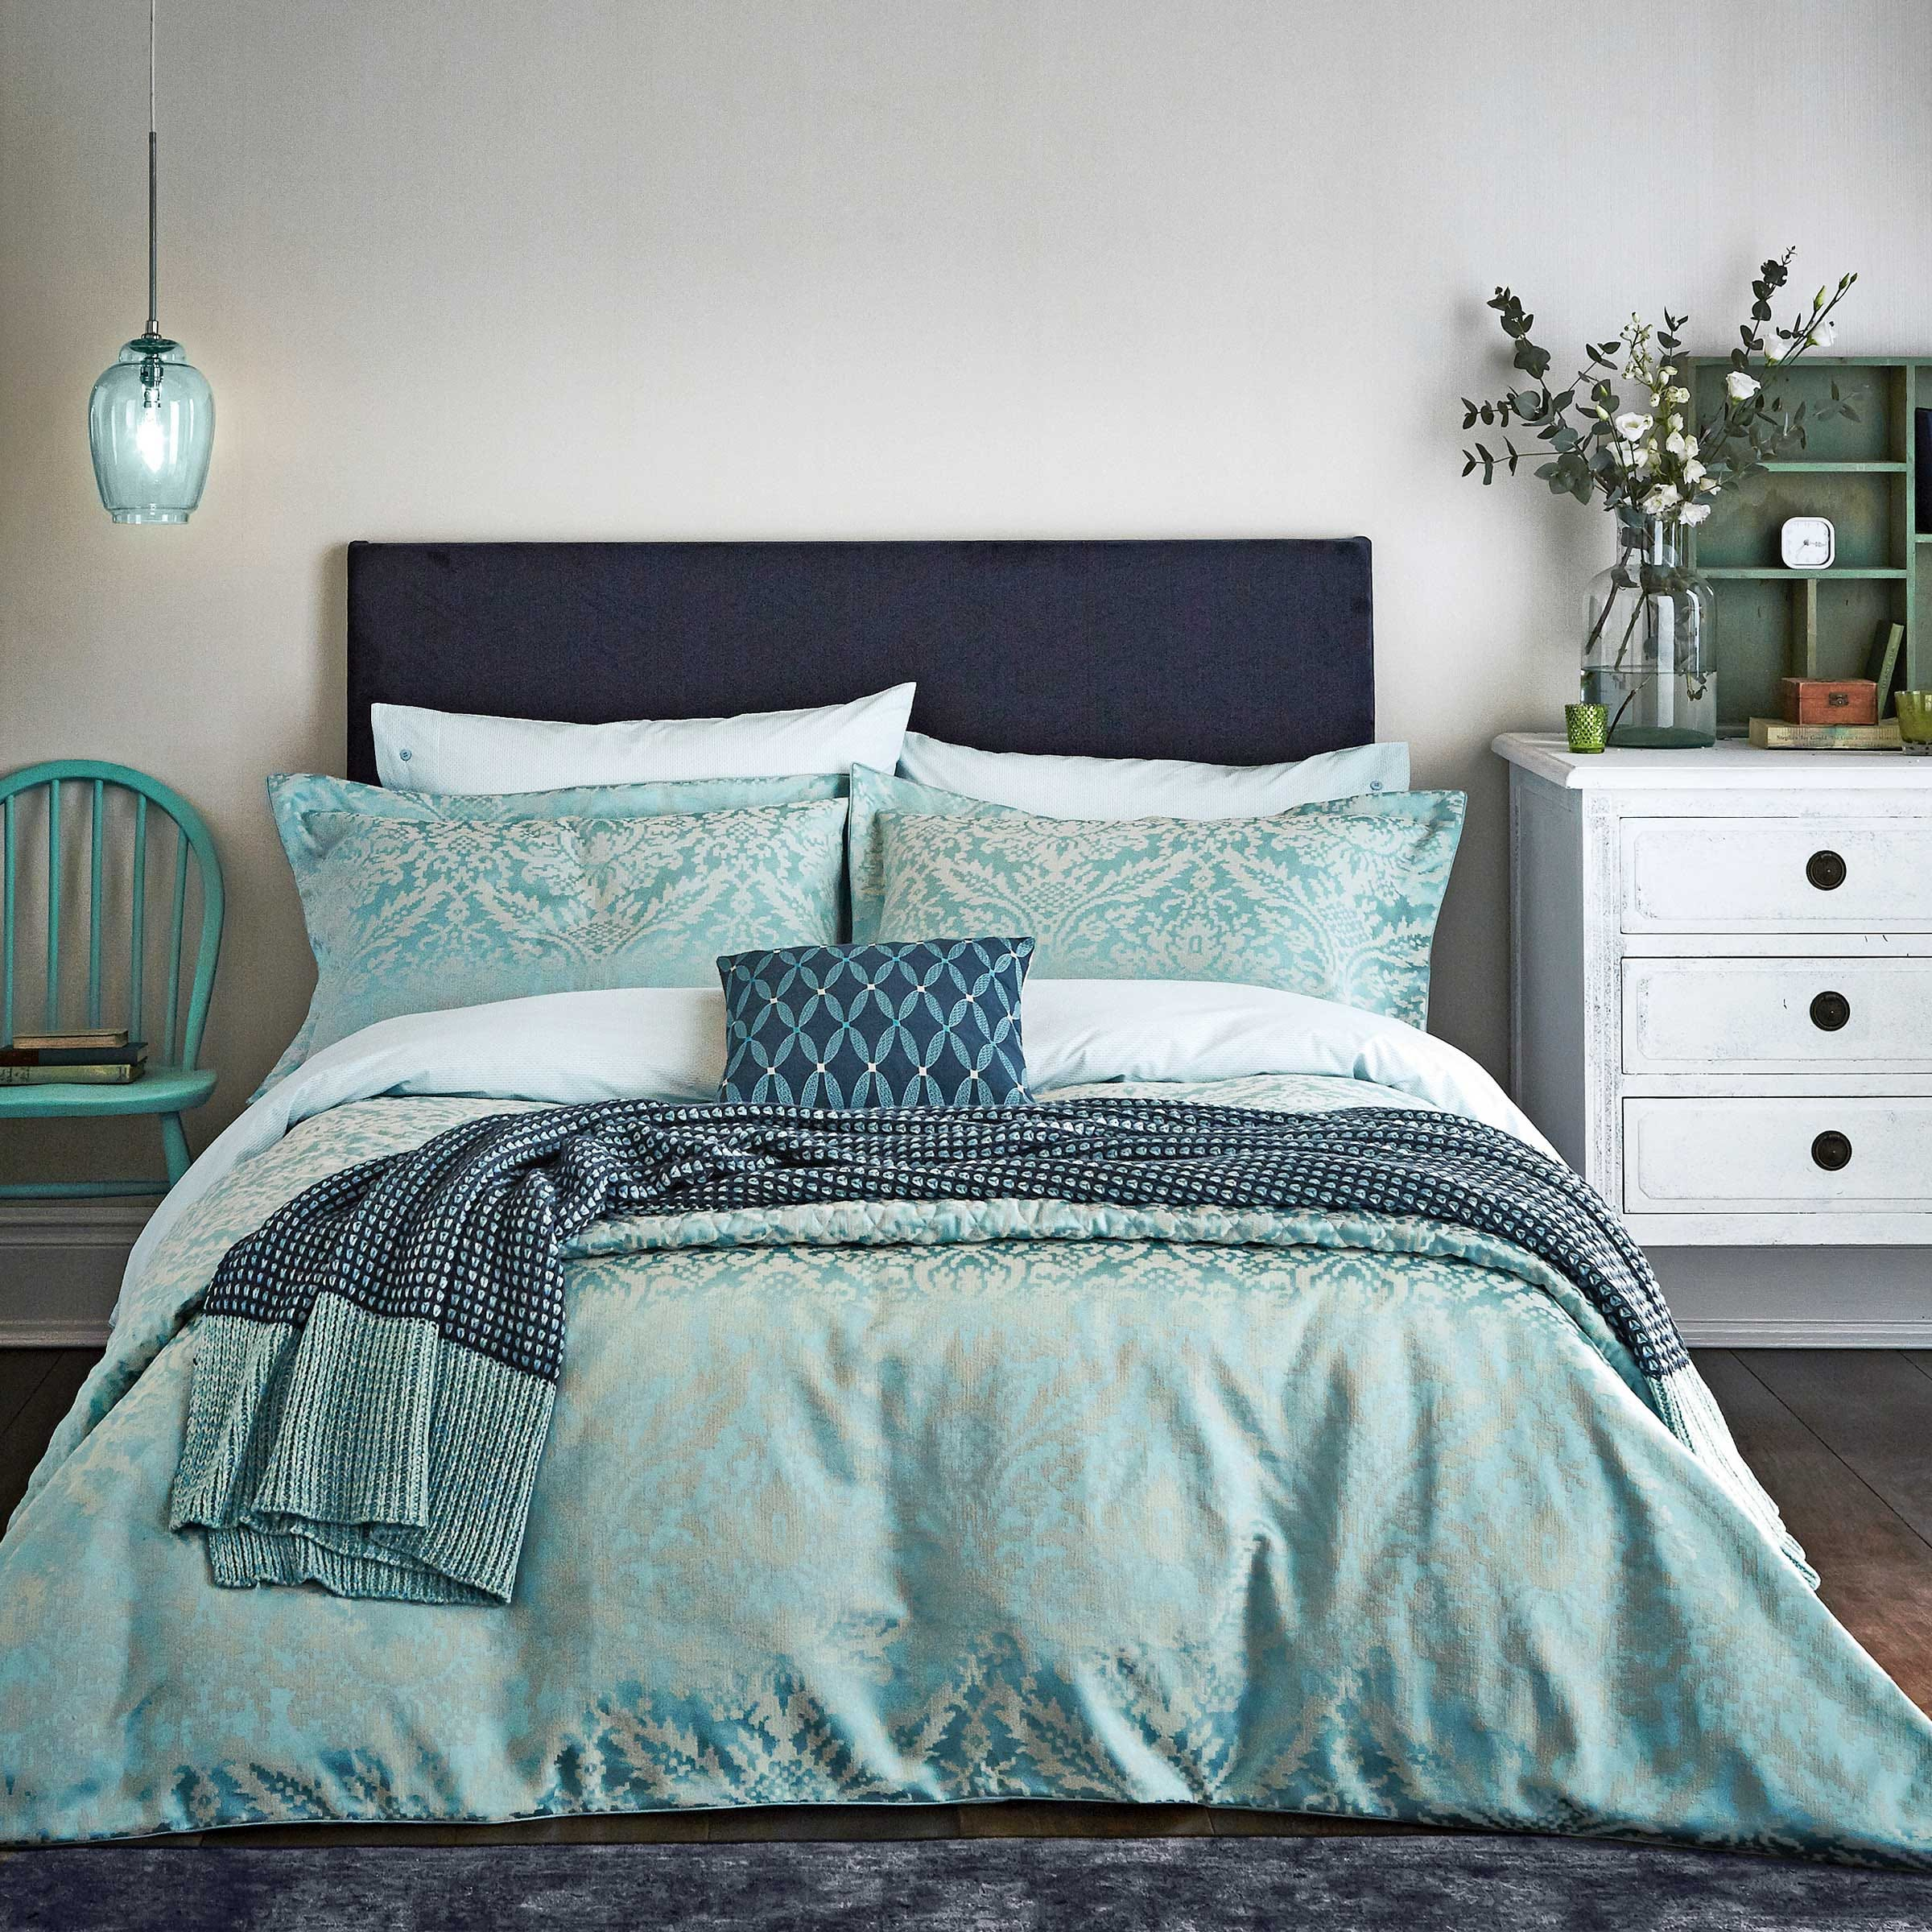 Bedeck 1951 Bedding - Loya Duvet Cover Kingsize - Mint